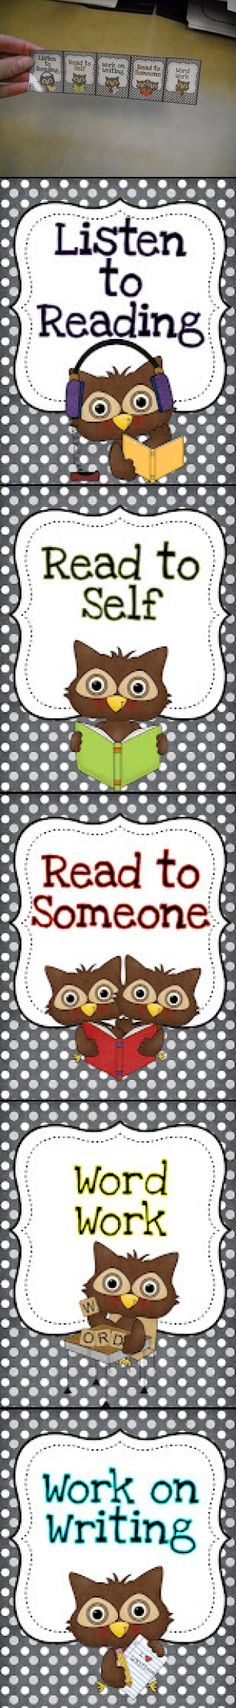 FREE and ready to download. Owl Theme Bookmarks and Posters for Daily 5.  Each student gets a bookmark at the beginning of the year that shows their rotations. No more taking up wall space and moving student names around to change rotations.